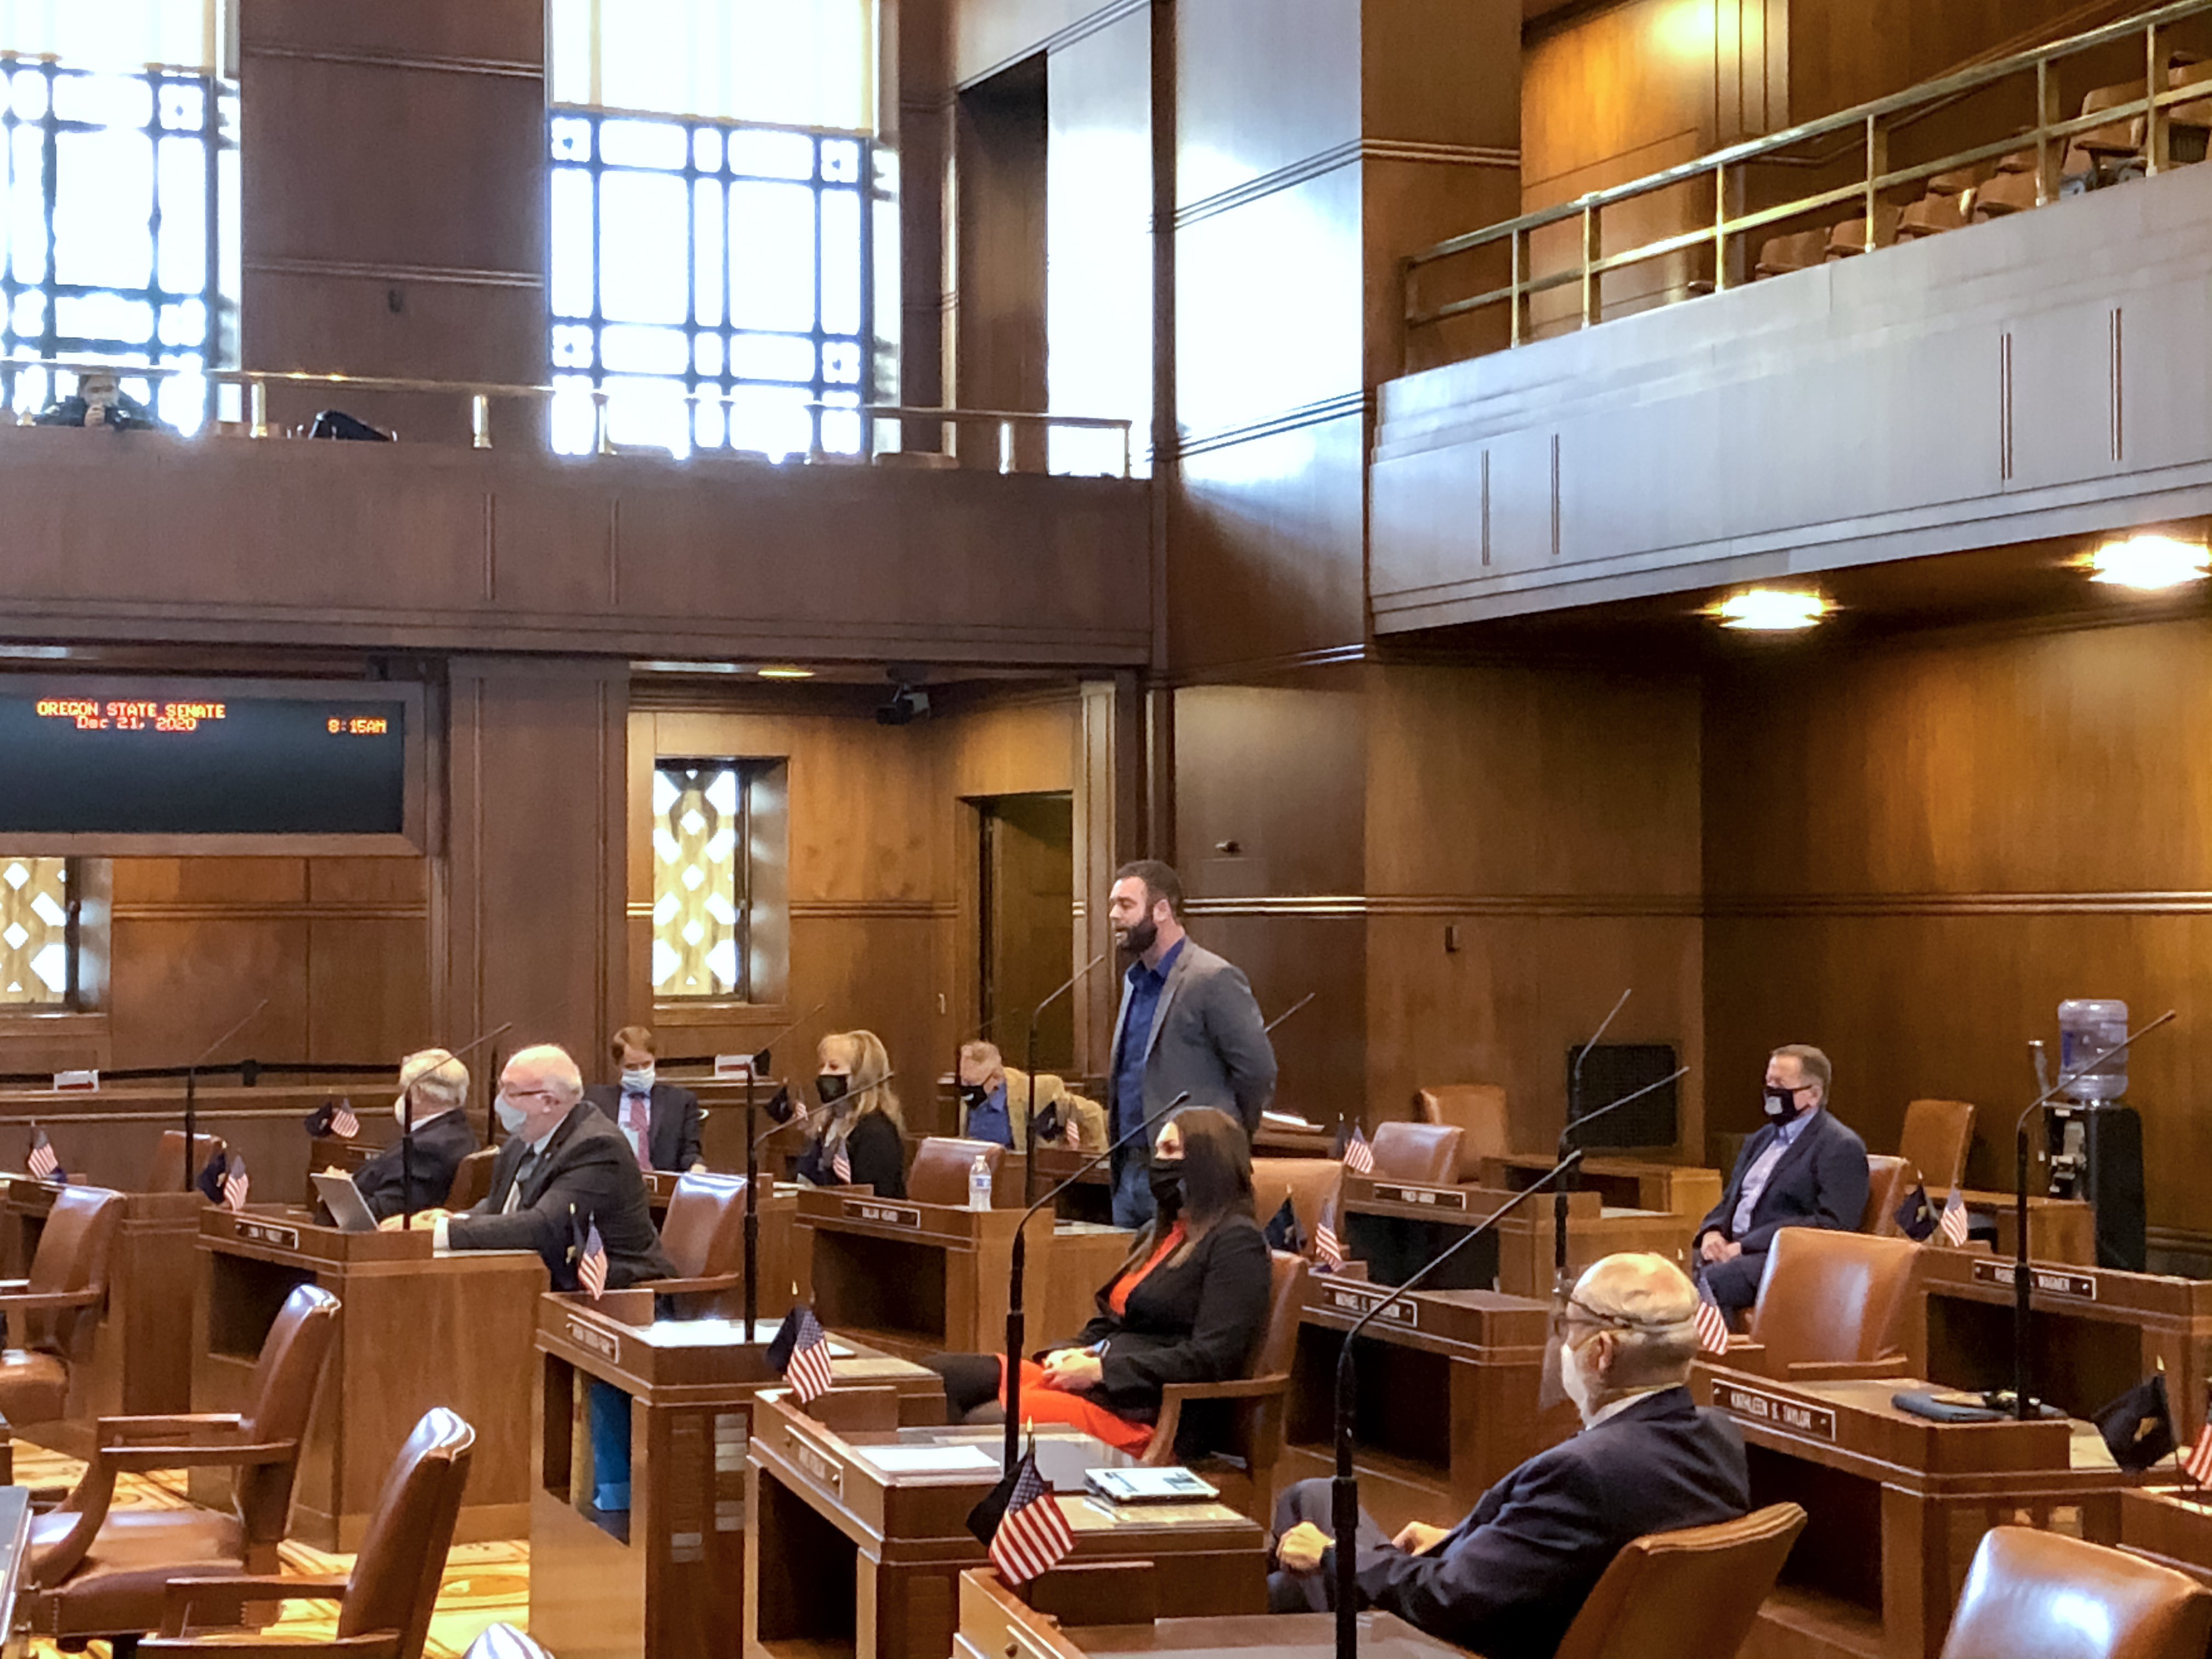 Legislators on the floor at the State Capitol Monday during a special session on Dec. 21, 2020.